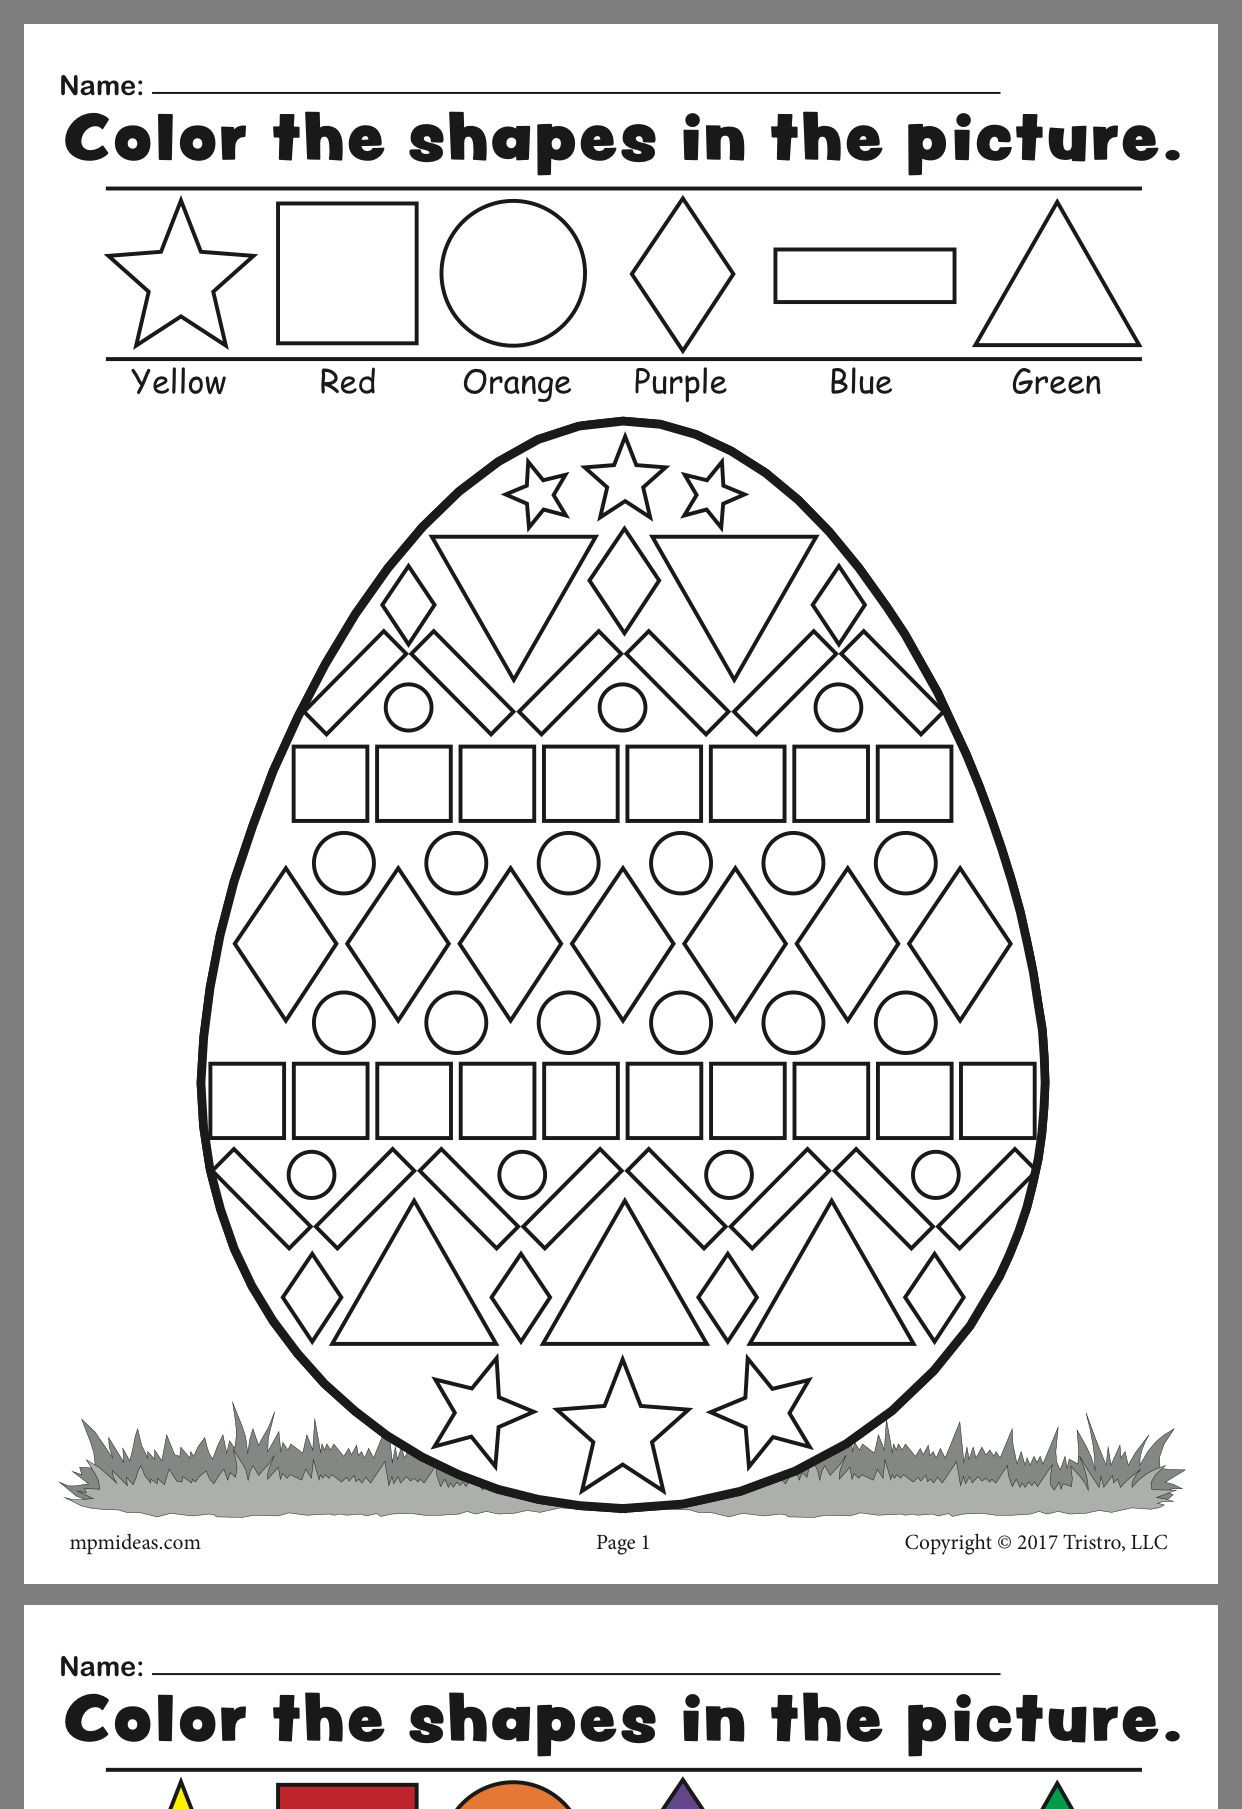 Pattern Worksheets 4th Grade Here Fun Worksheet that You Can and Print for Free Number